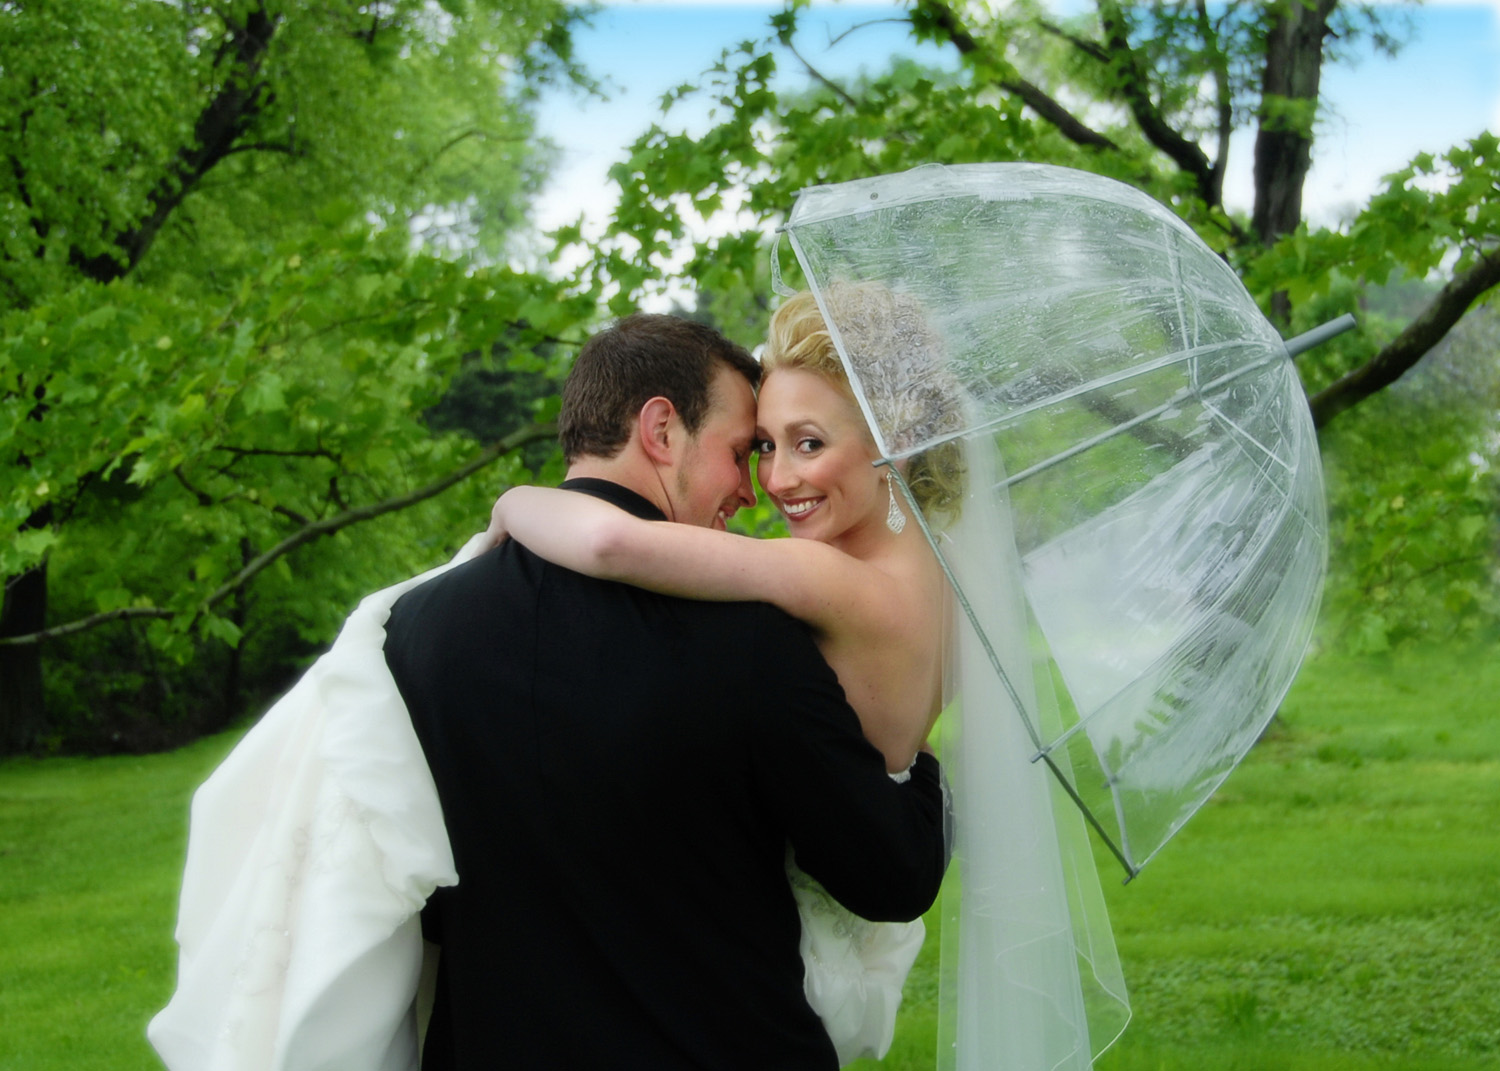 Groom carrying bride during Spring rain / Meyer Photography